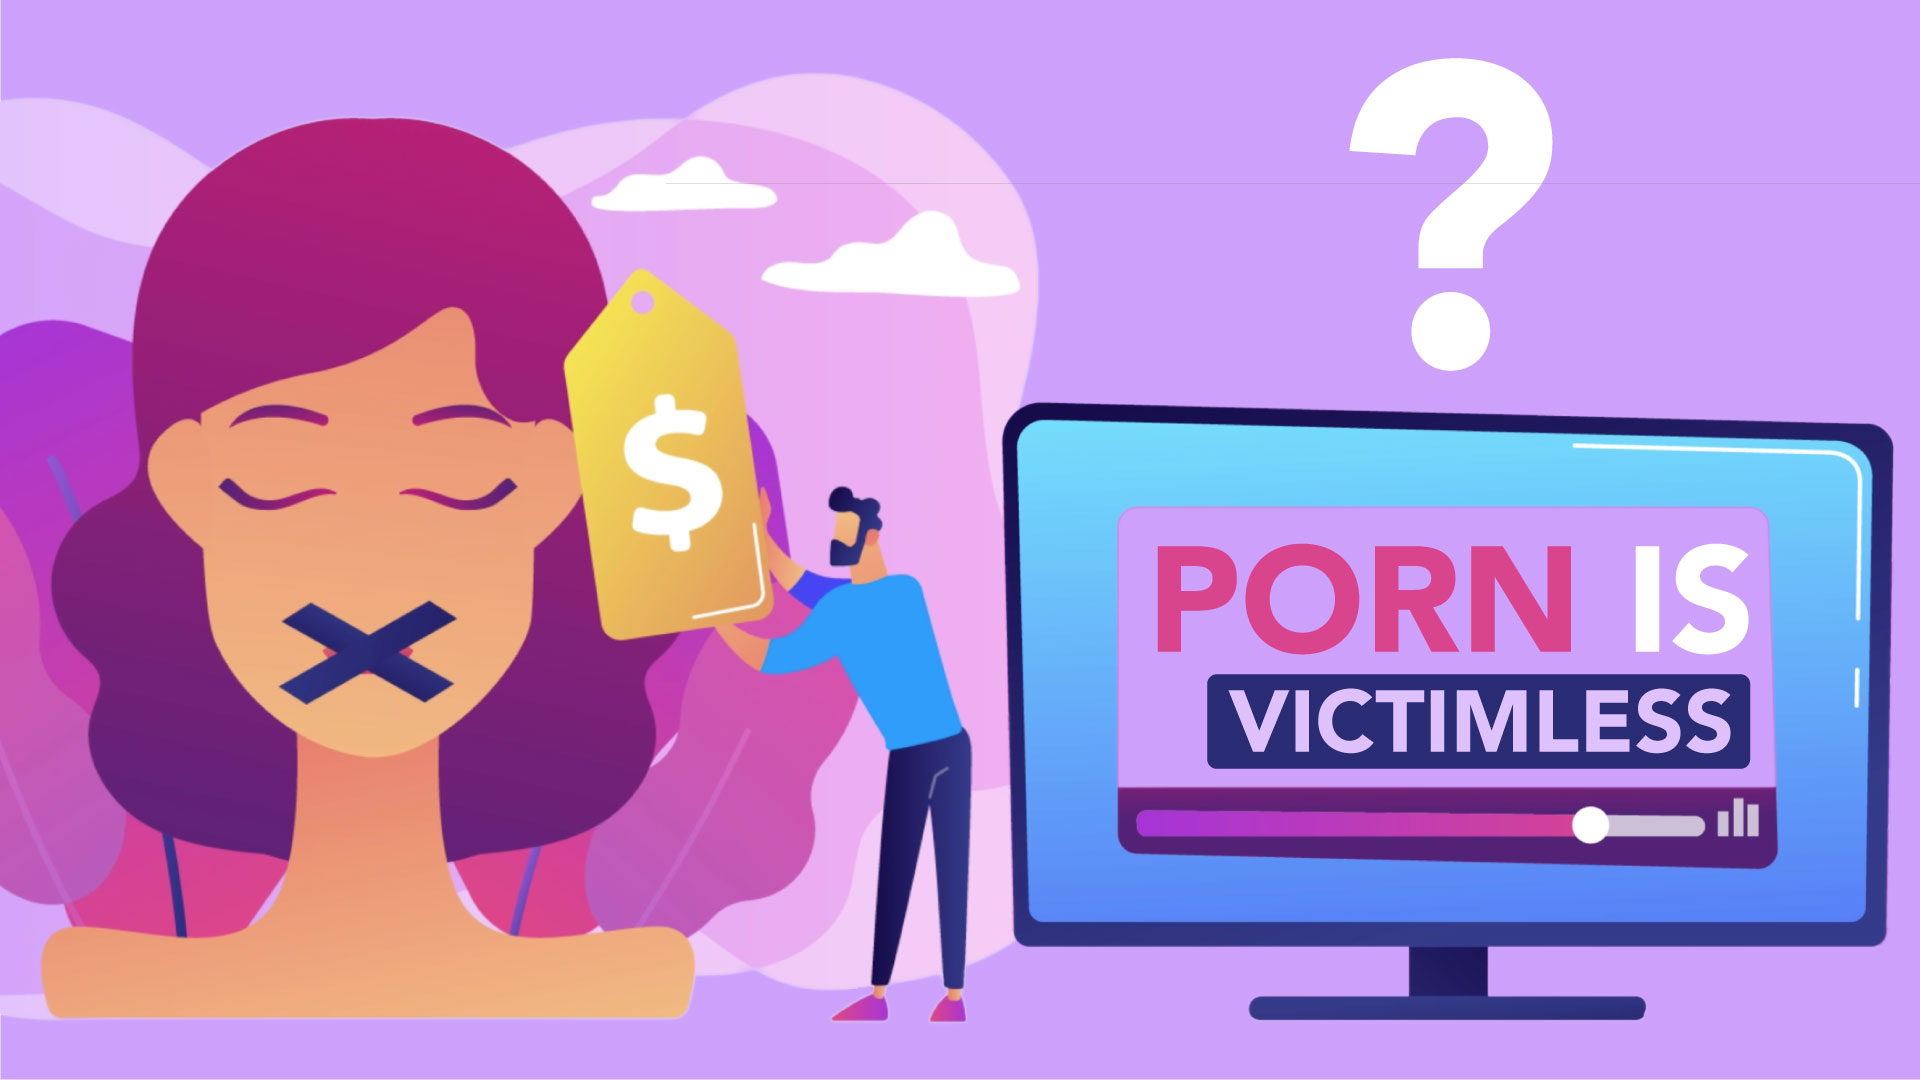 Porn is Victimless?